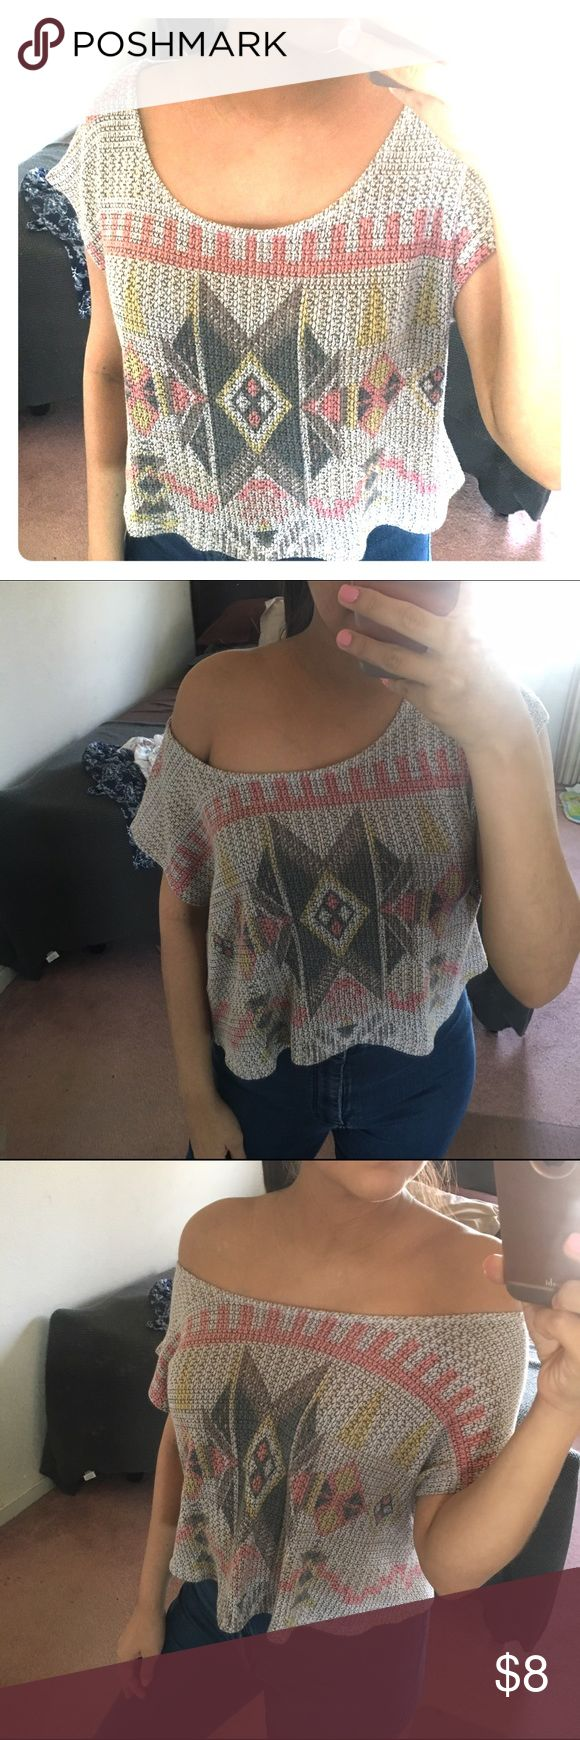 Tribal shirt Super cute and used for different styles as shown in photo. NO damages or rips. Love Culture Tops Crop Tops